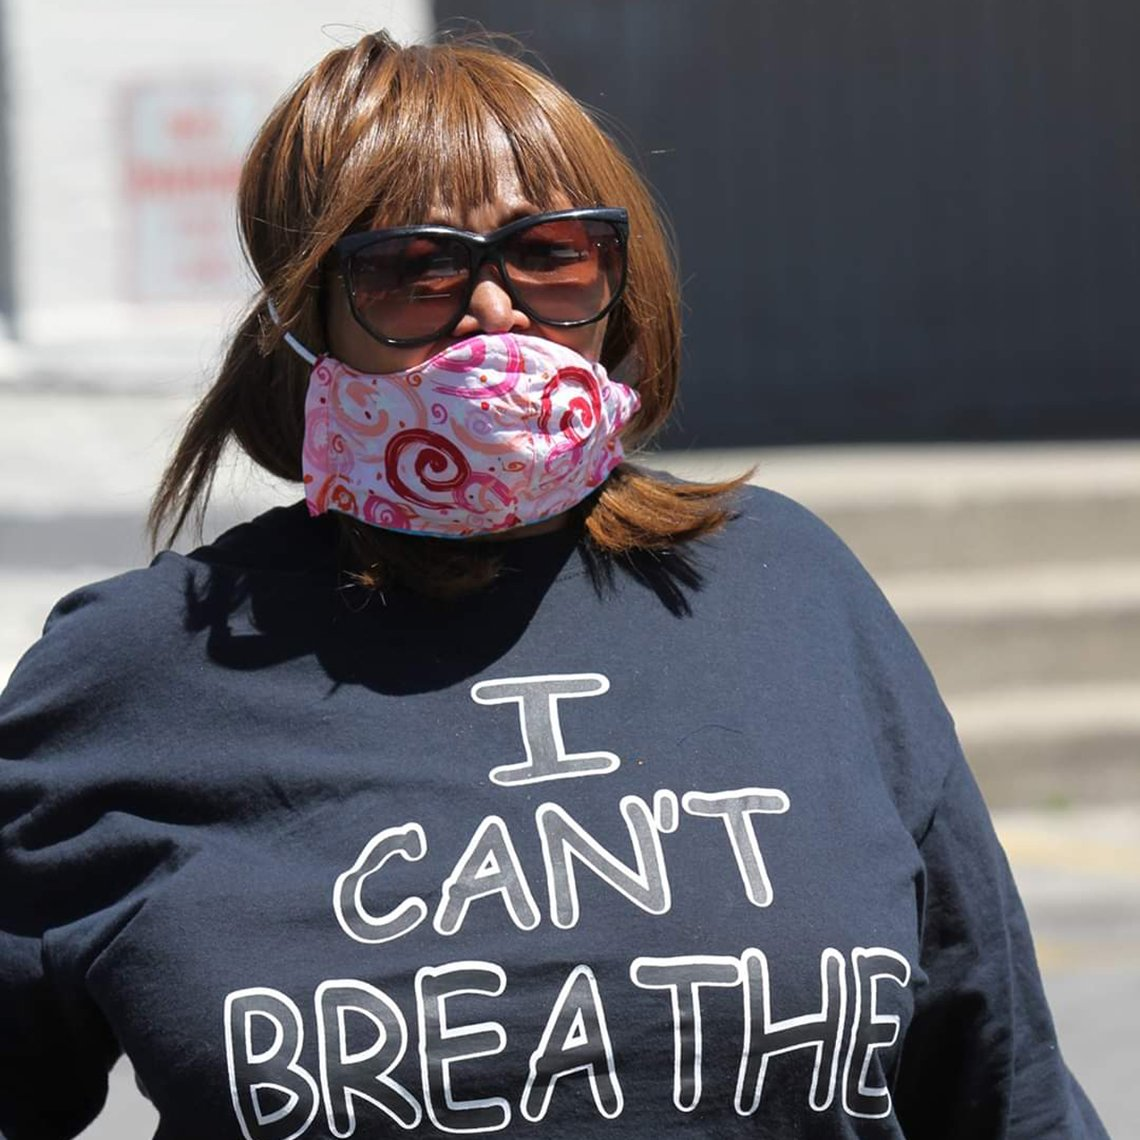 rhonda mathies wearing a face mask and shirt that says i cant breathe at a protest